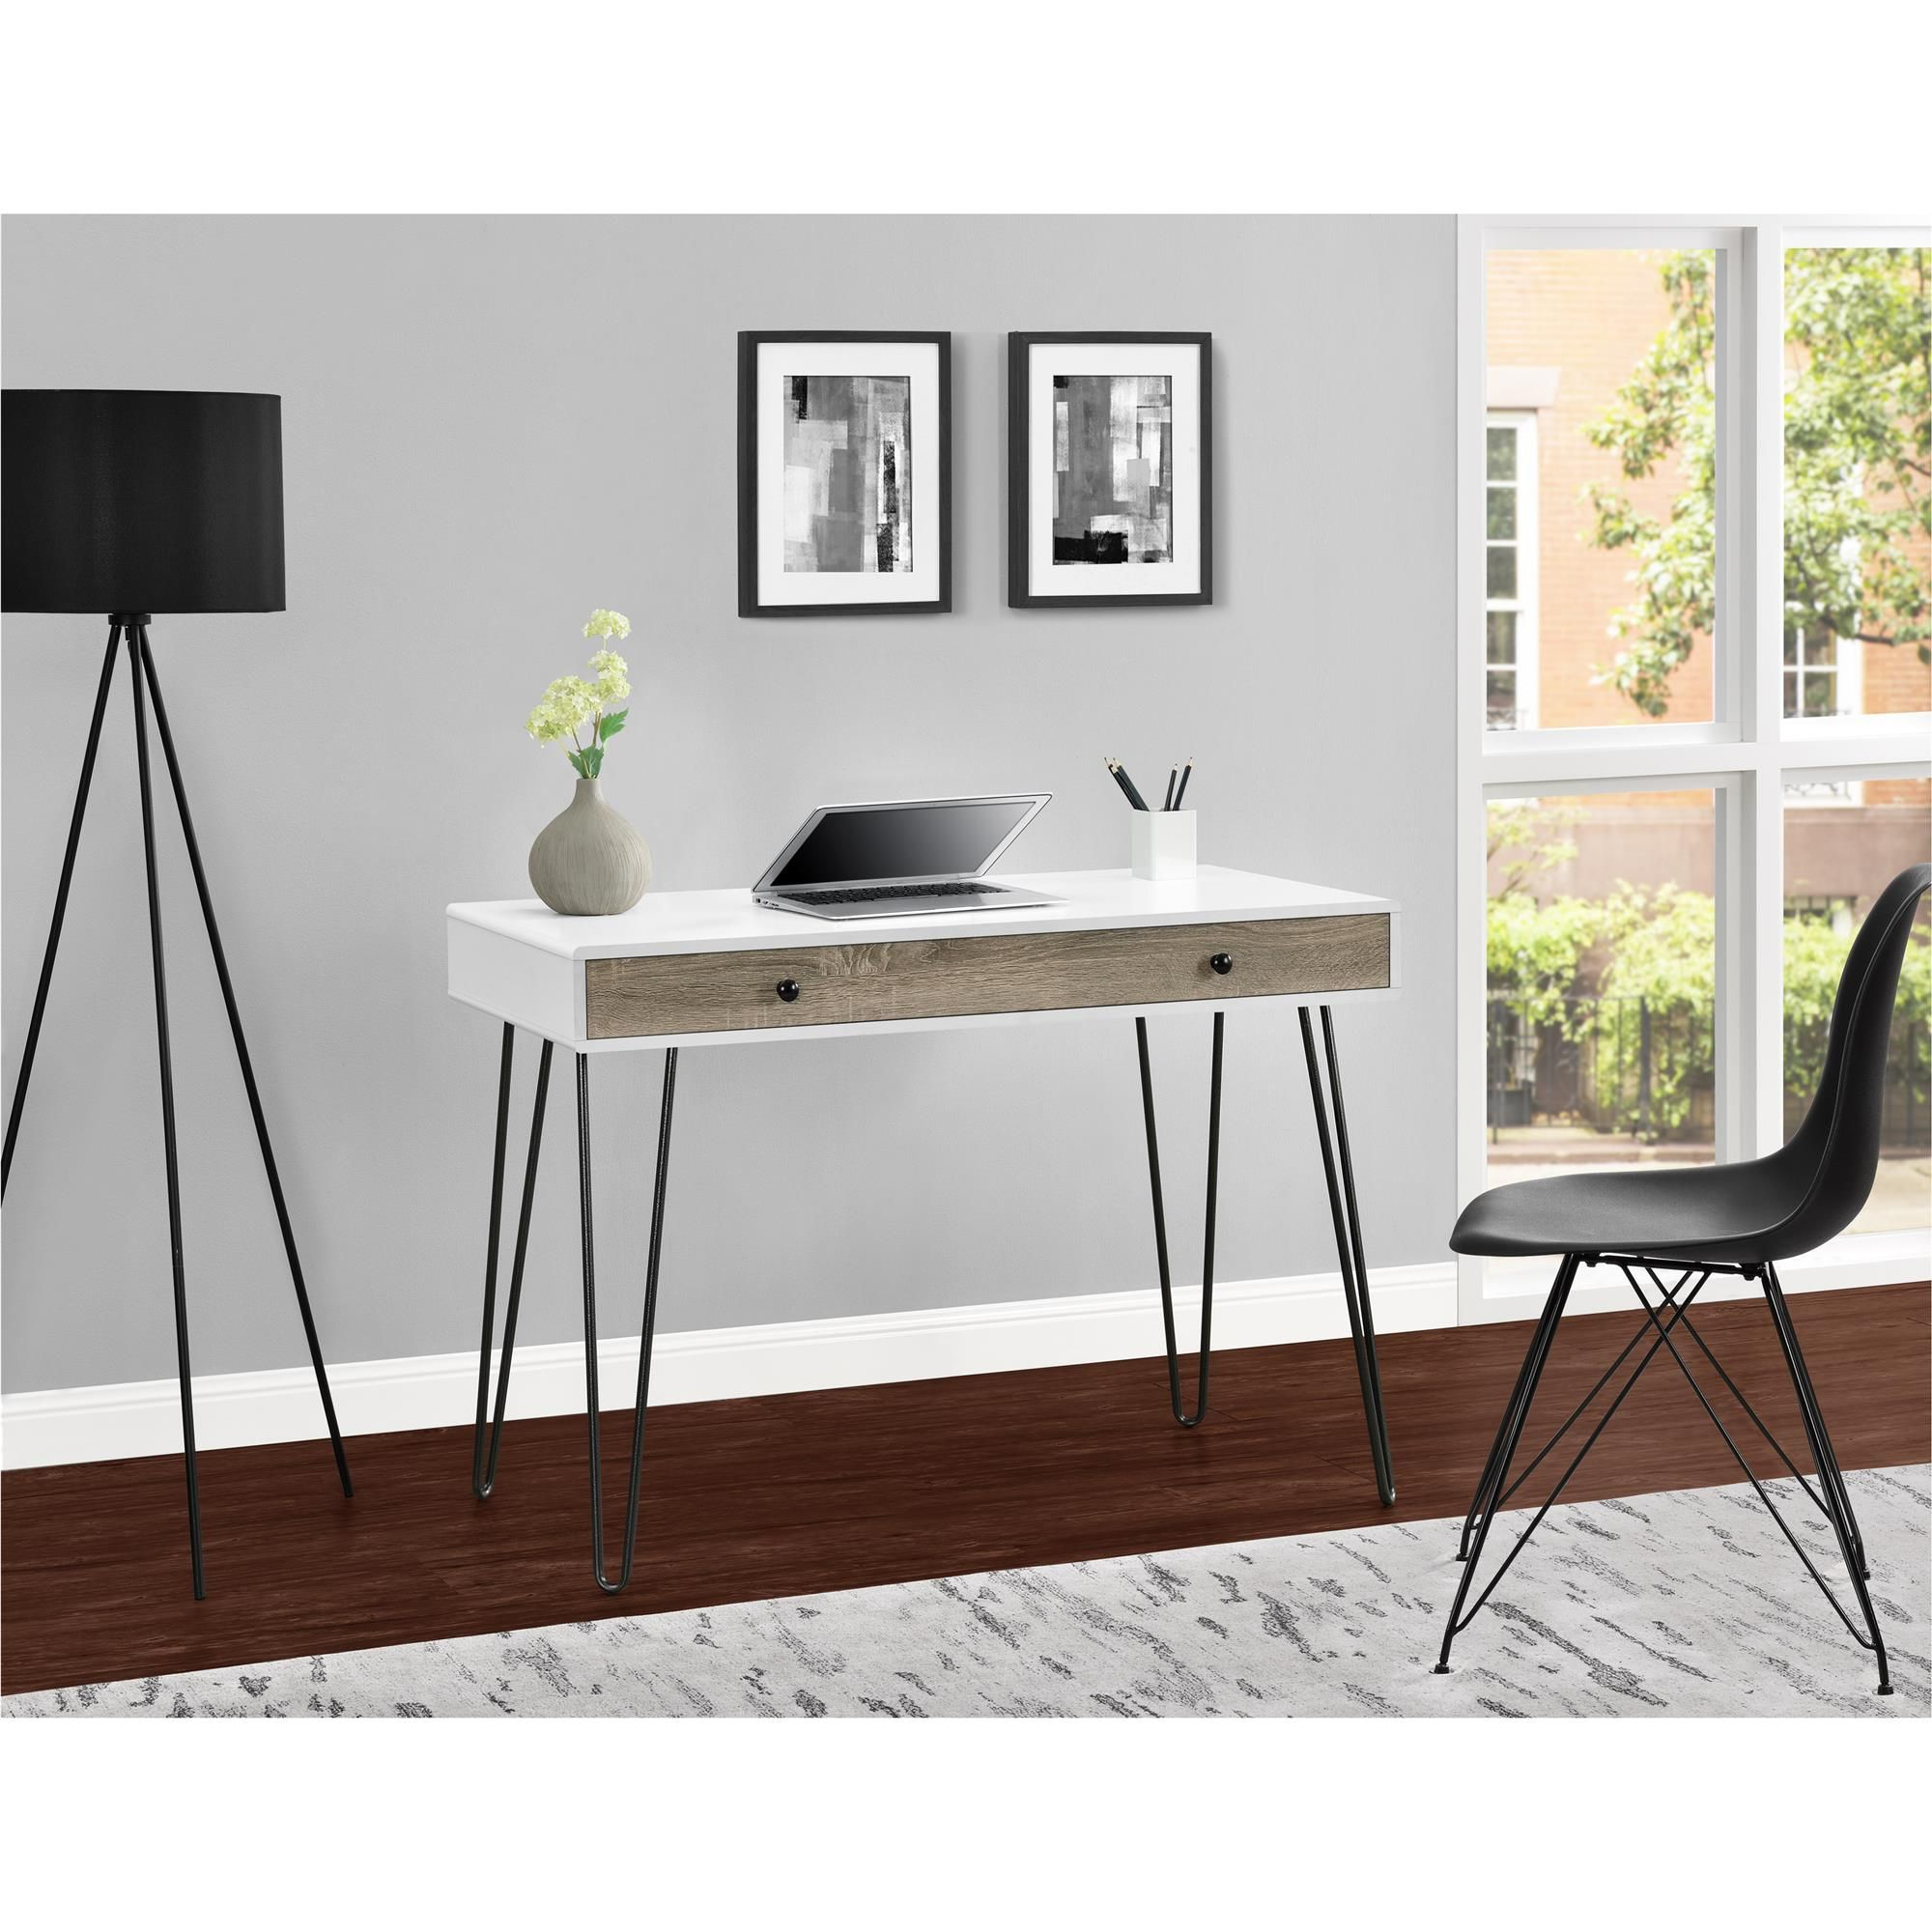 Simplicity And Functionality Come Together In The Ameriwood Home Owen Retro Student Desk The Slender Silhouette A Desk With Drawers Retro Desk Altra Furniture